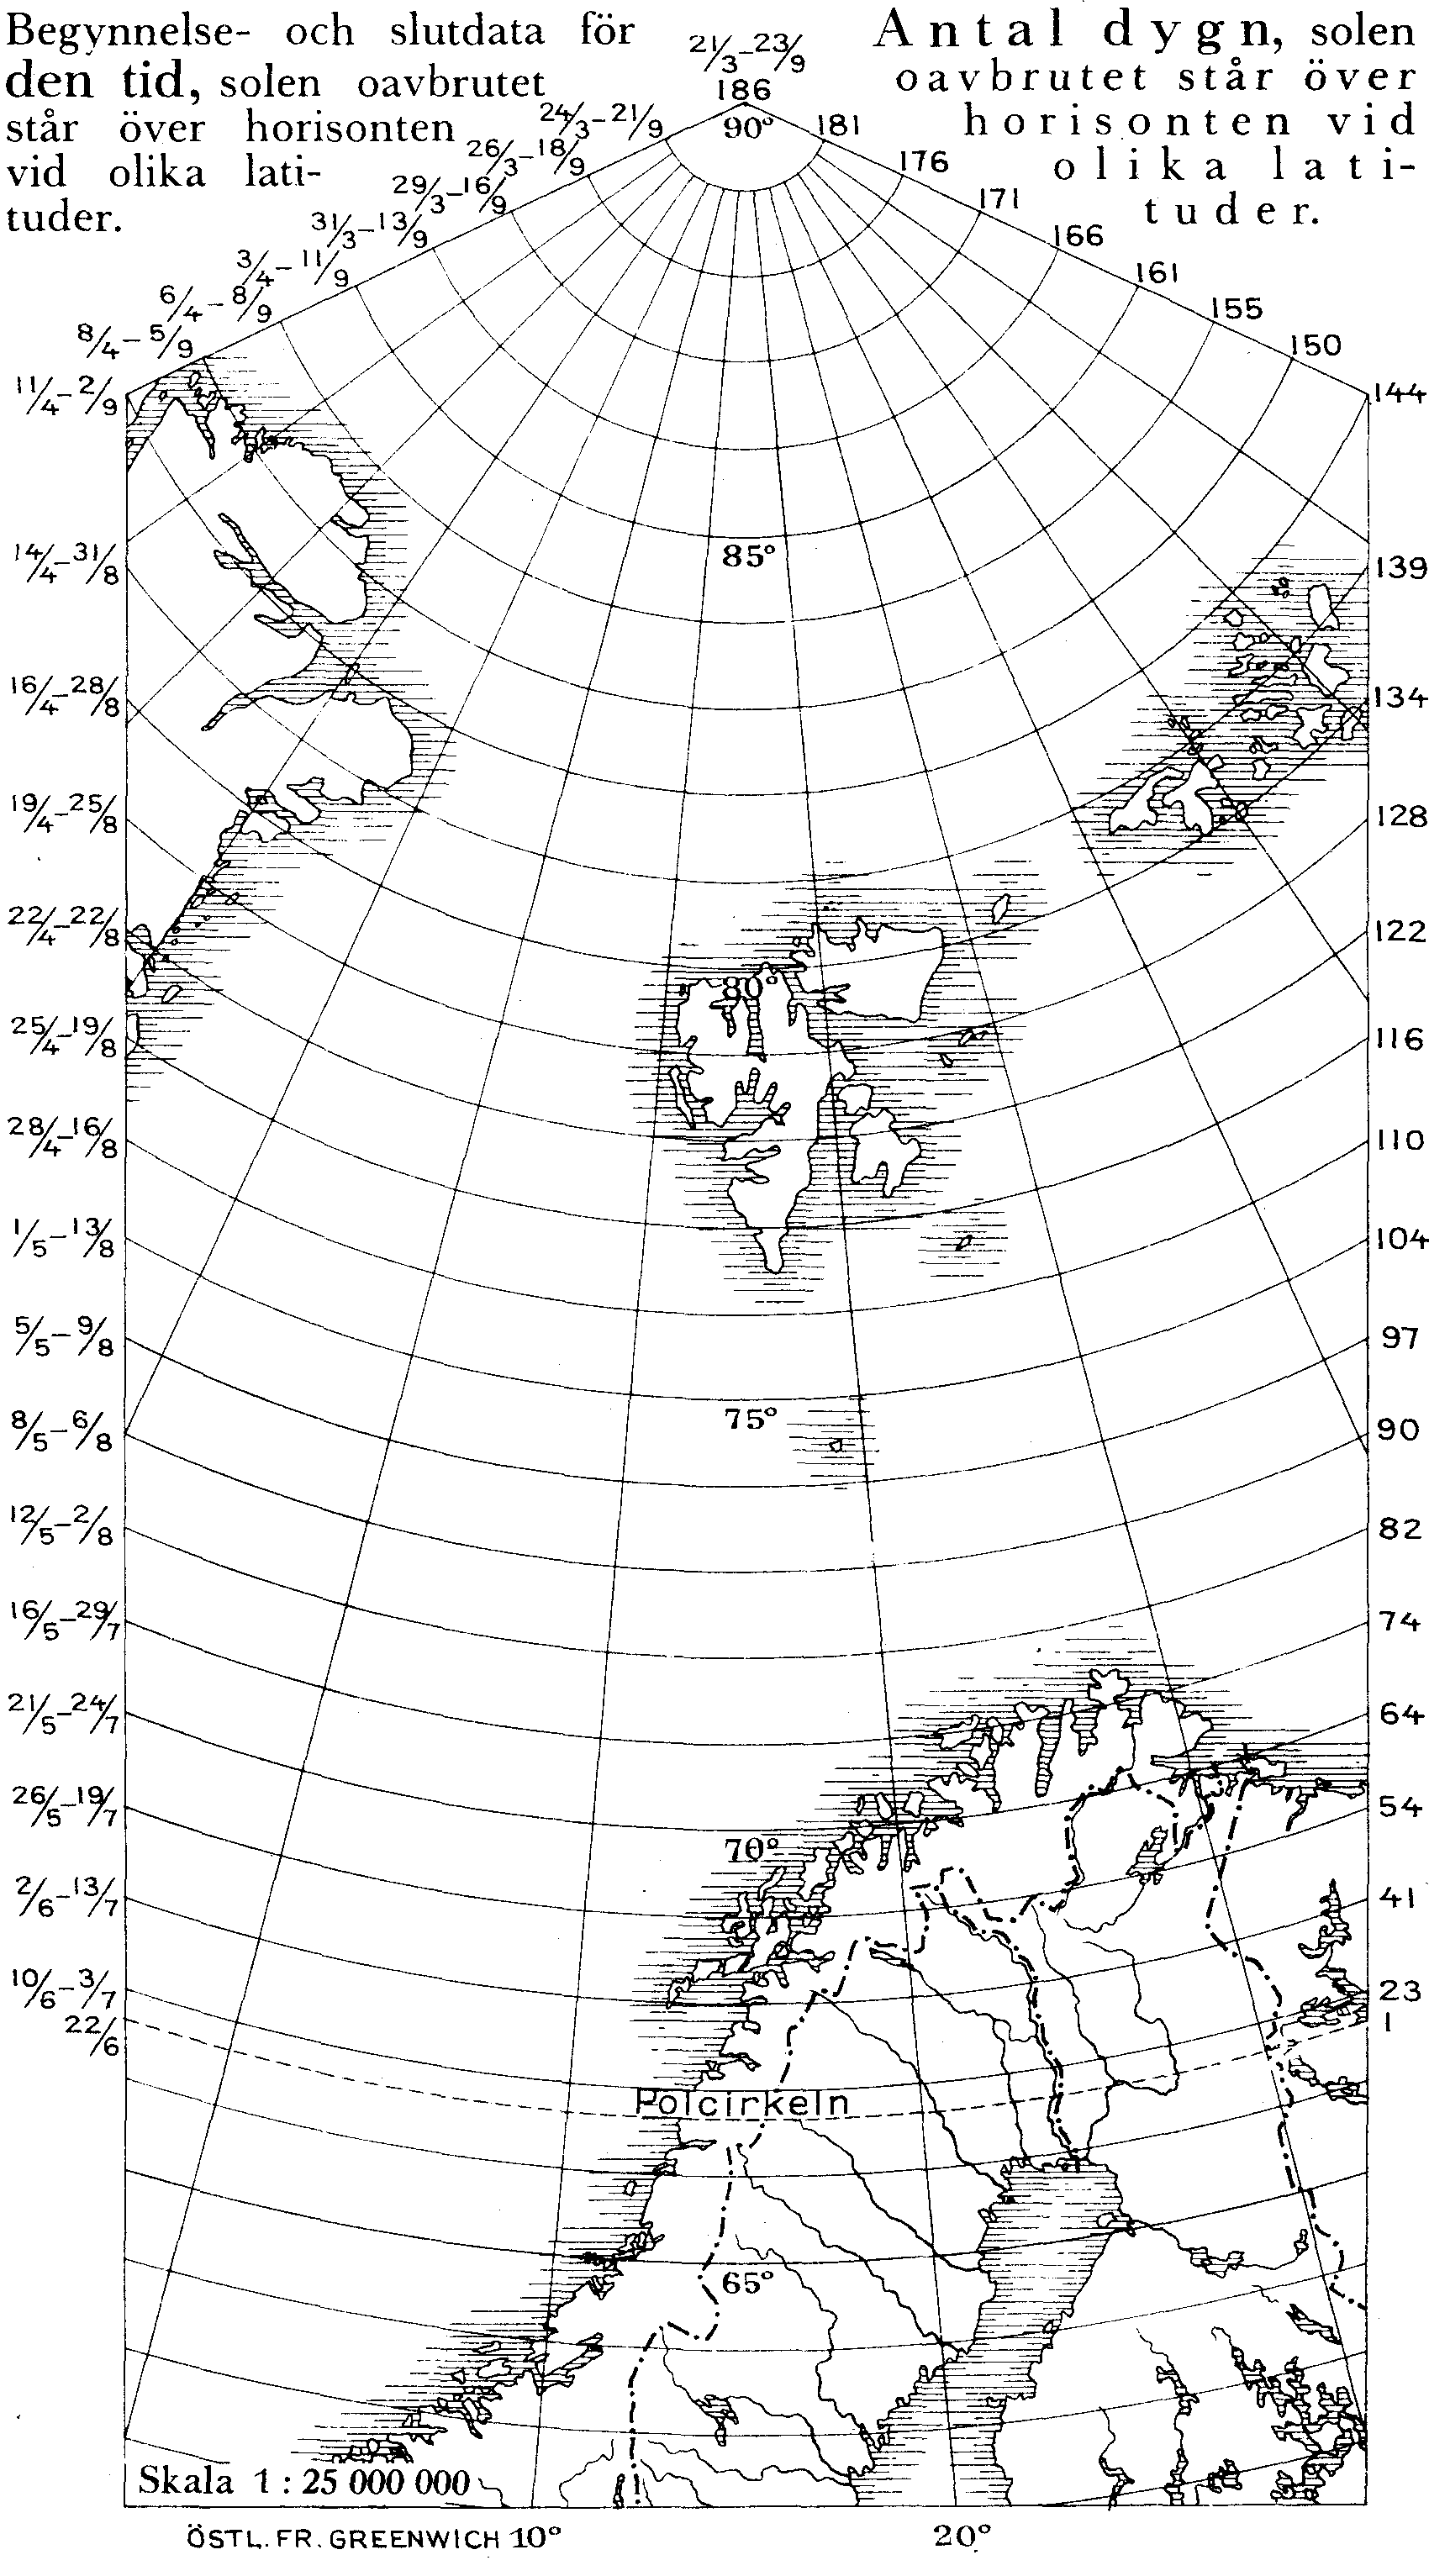 Map showing the dates of midnight sun at various latitudes (left) and the total number of nights.